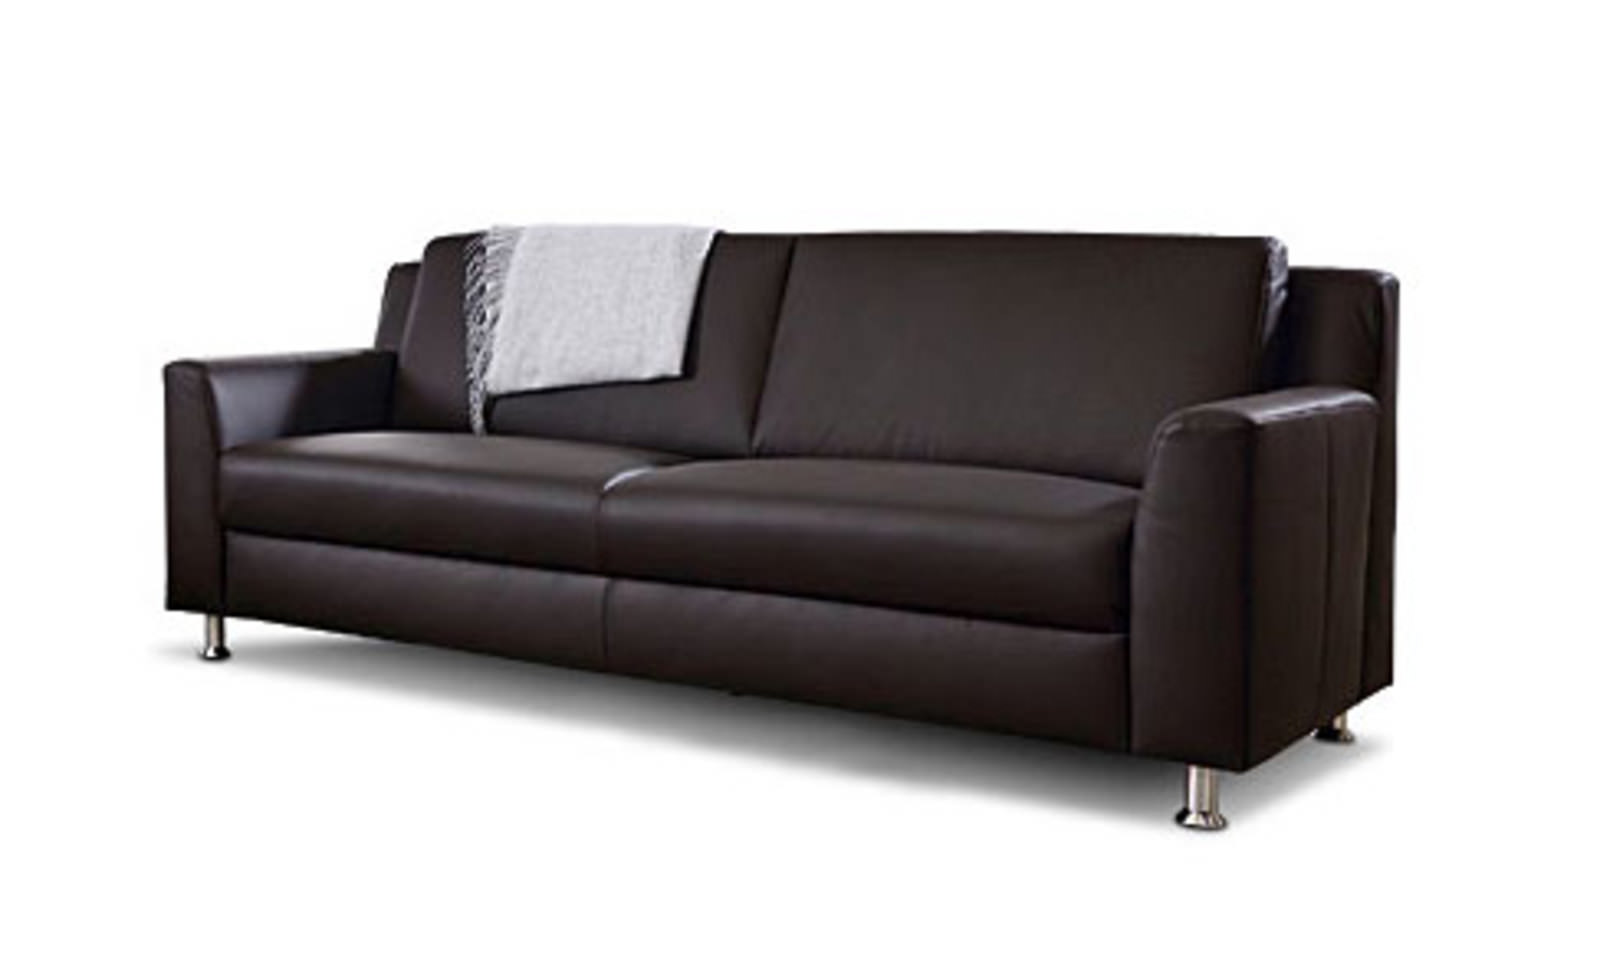 mondo sofa 2 sitzer extra gro online entdecken schaffrath ihr m belhaus. Black Bedroom Furniture Sets. Home Design Ideas